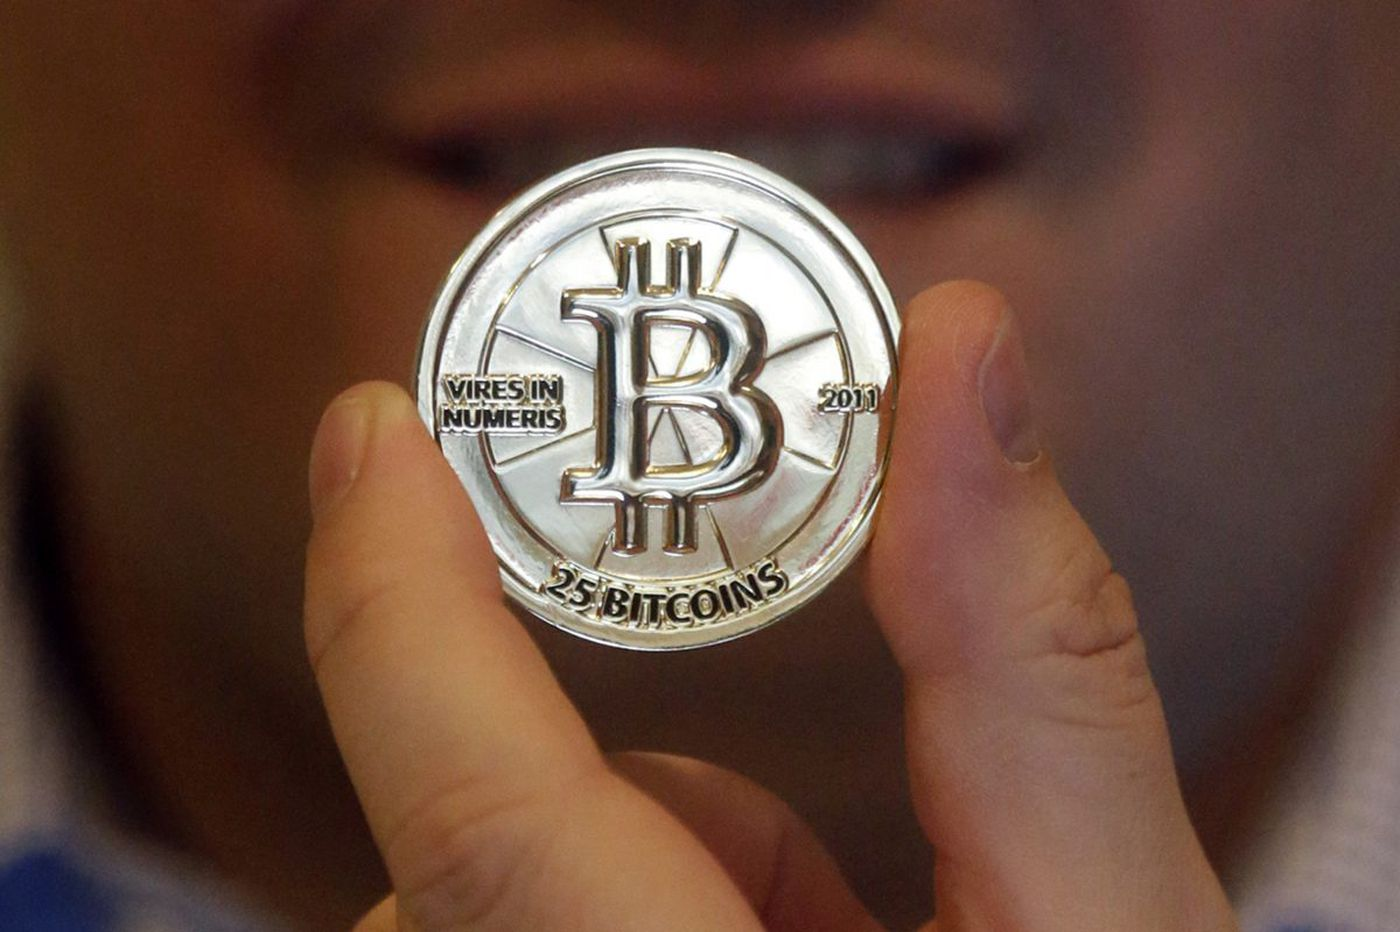 U.S. to sell off seized bitcoin